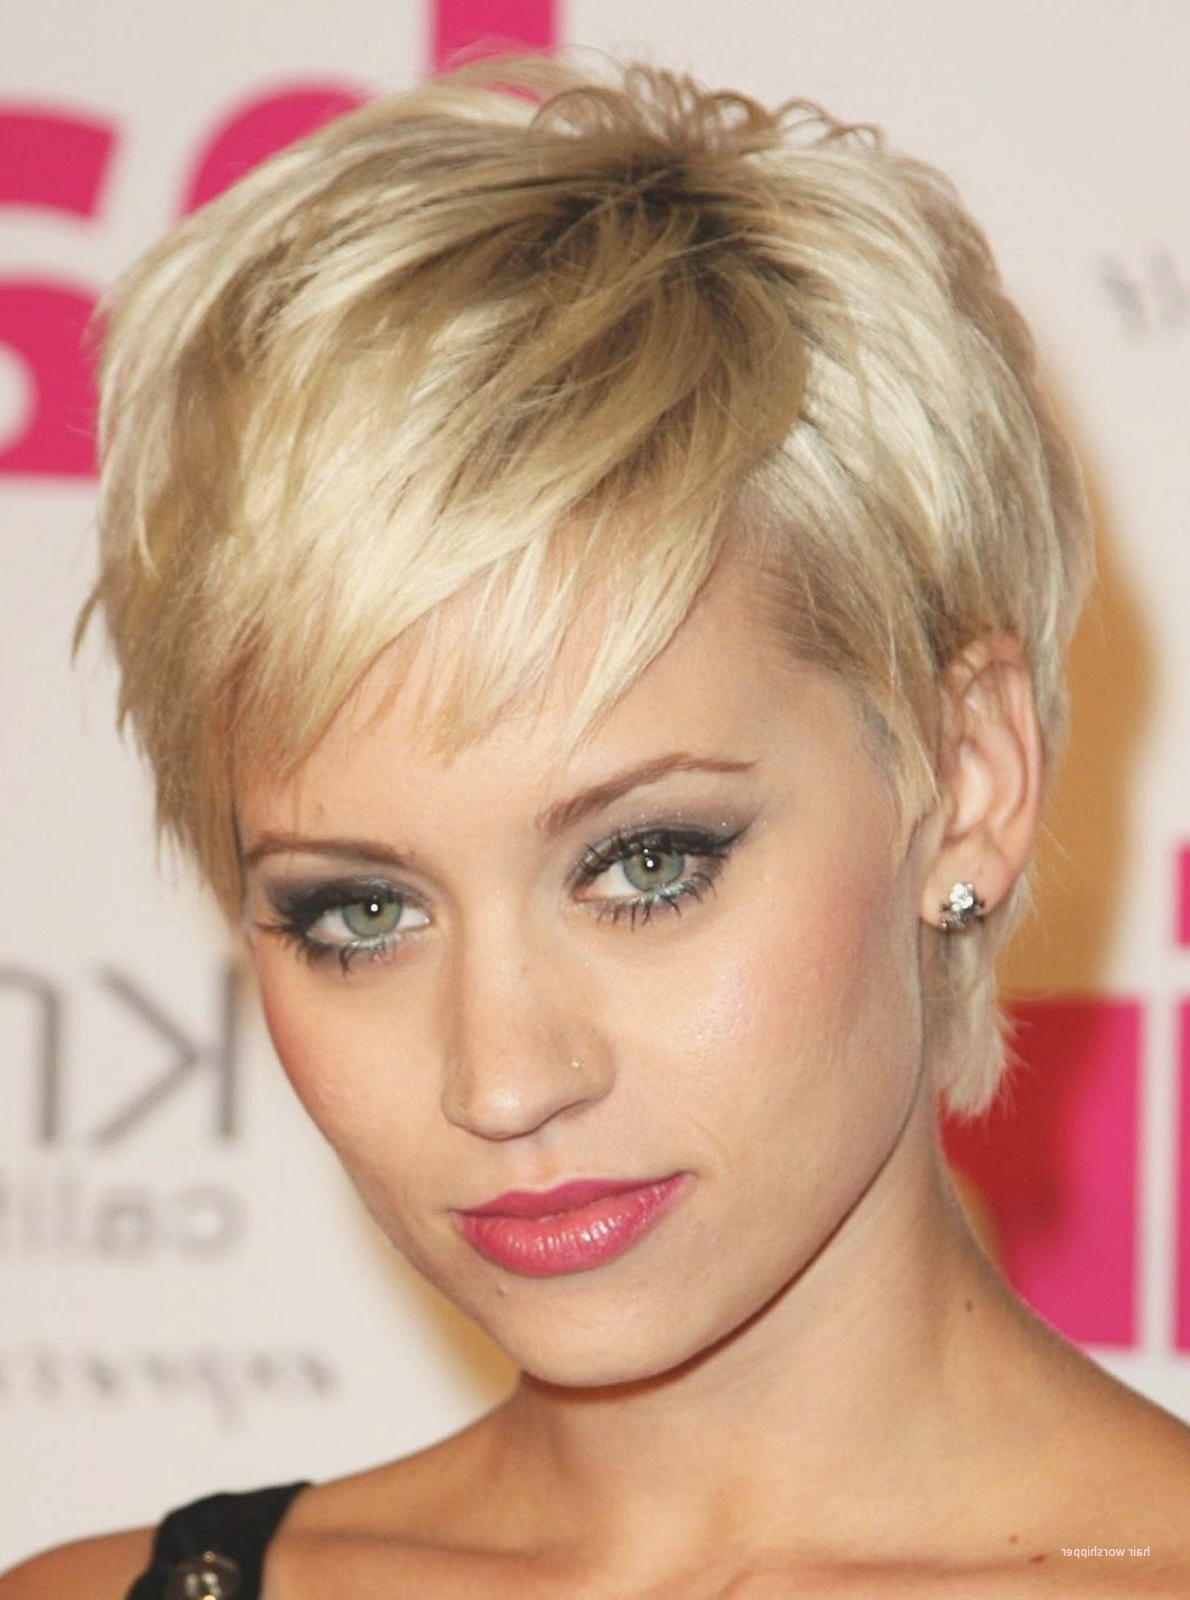 Best Of Hairstyle Ideas 40 Year Olds – Hair Worshipper With Regard To Short Hairstyles For Over 40 Year Old Woman (View 15 of 25)